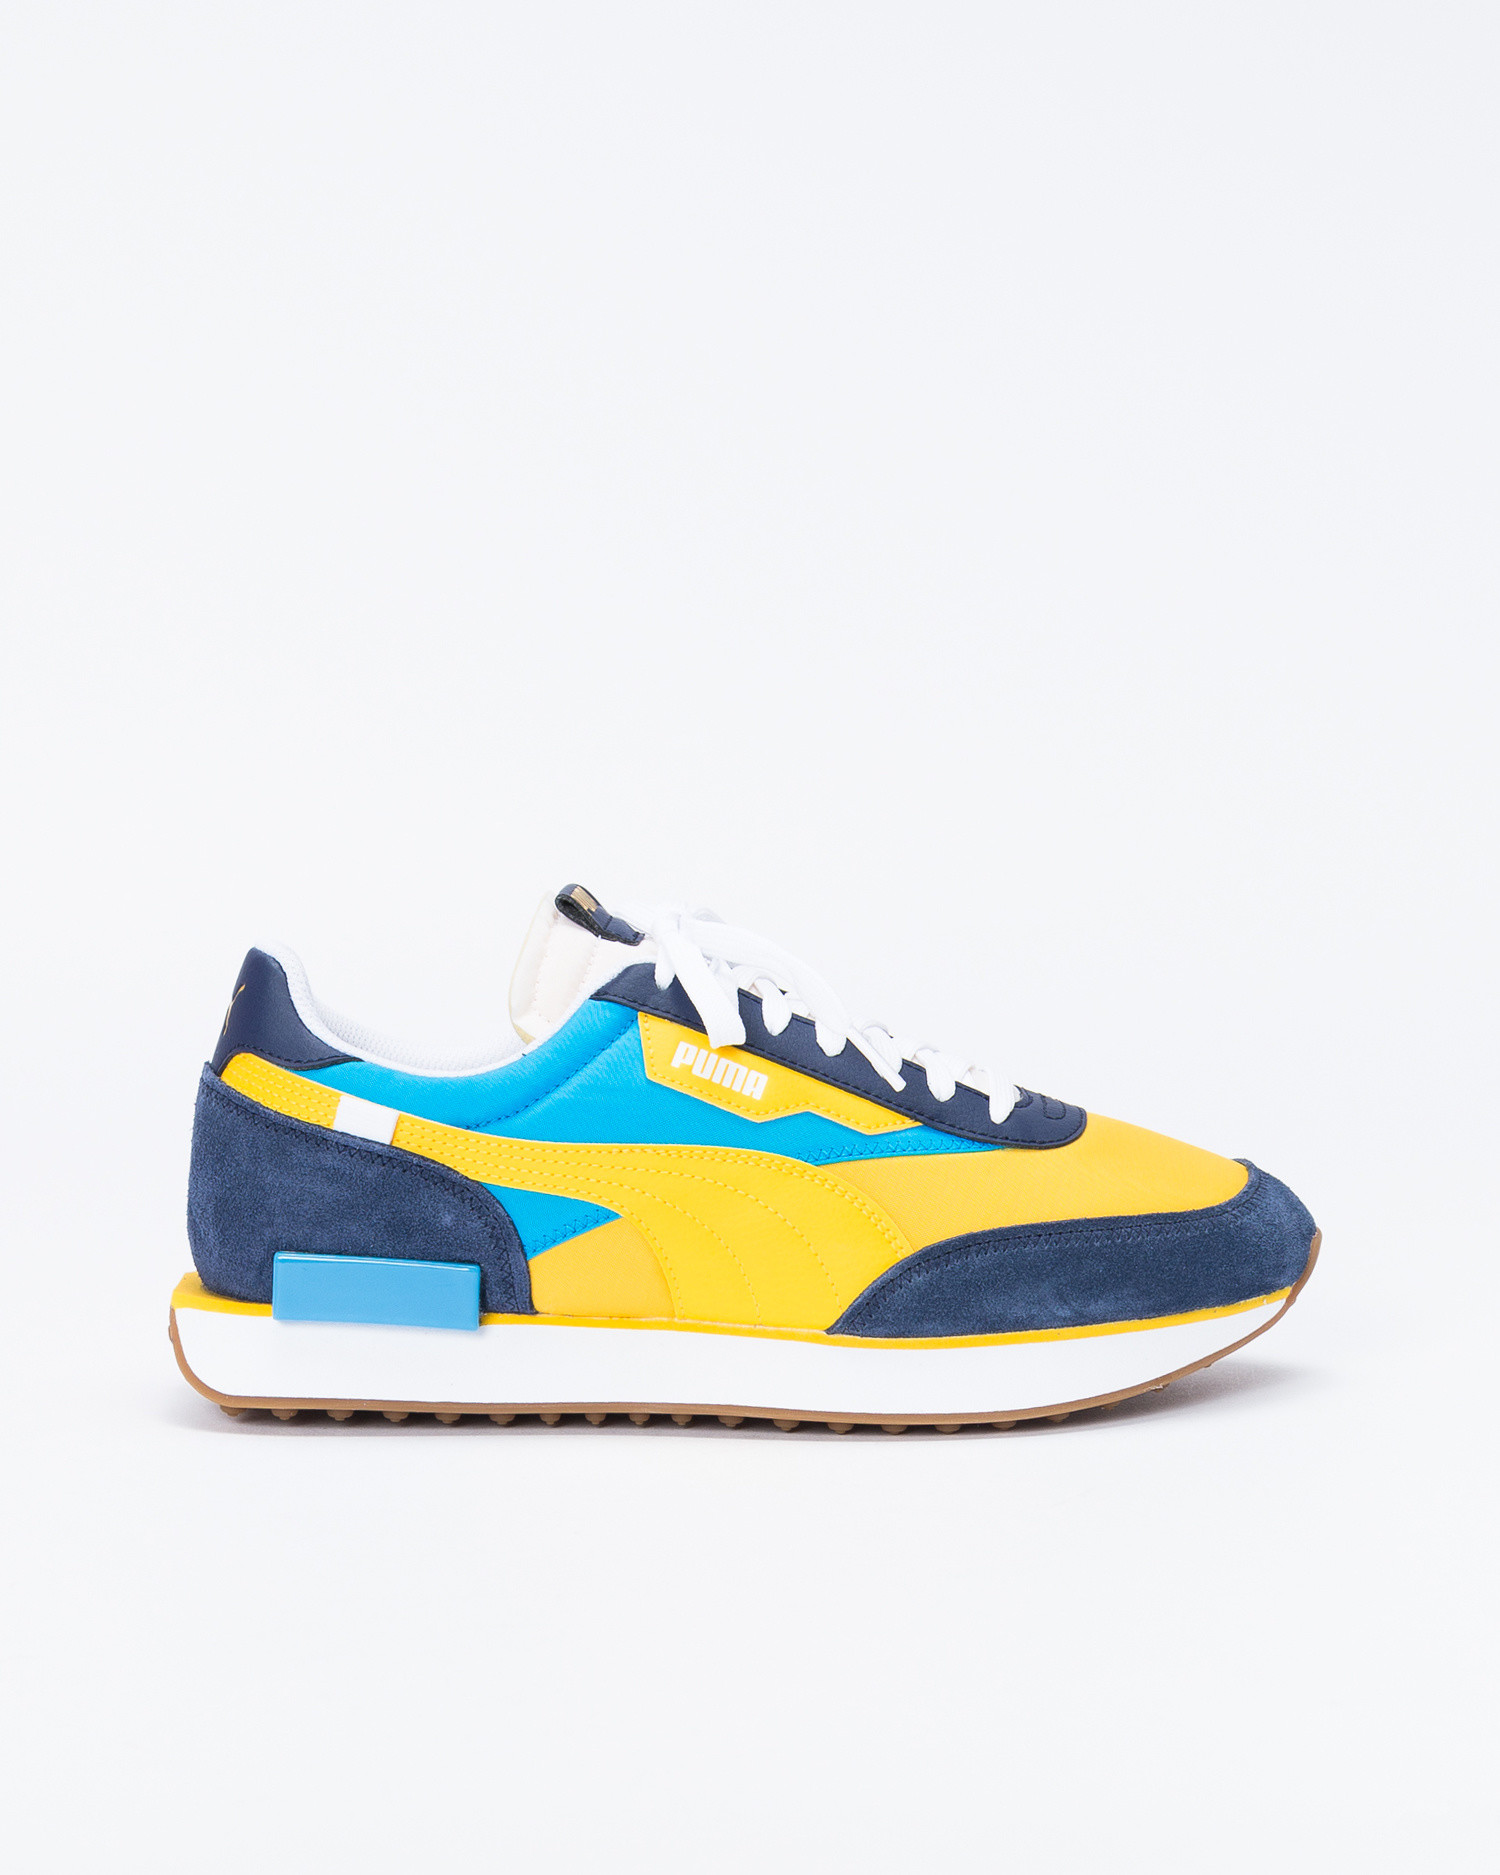 Puma Future Rider OG Pack Peacoat-Spectra Yellow